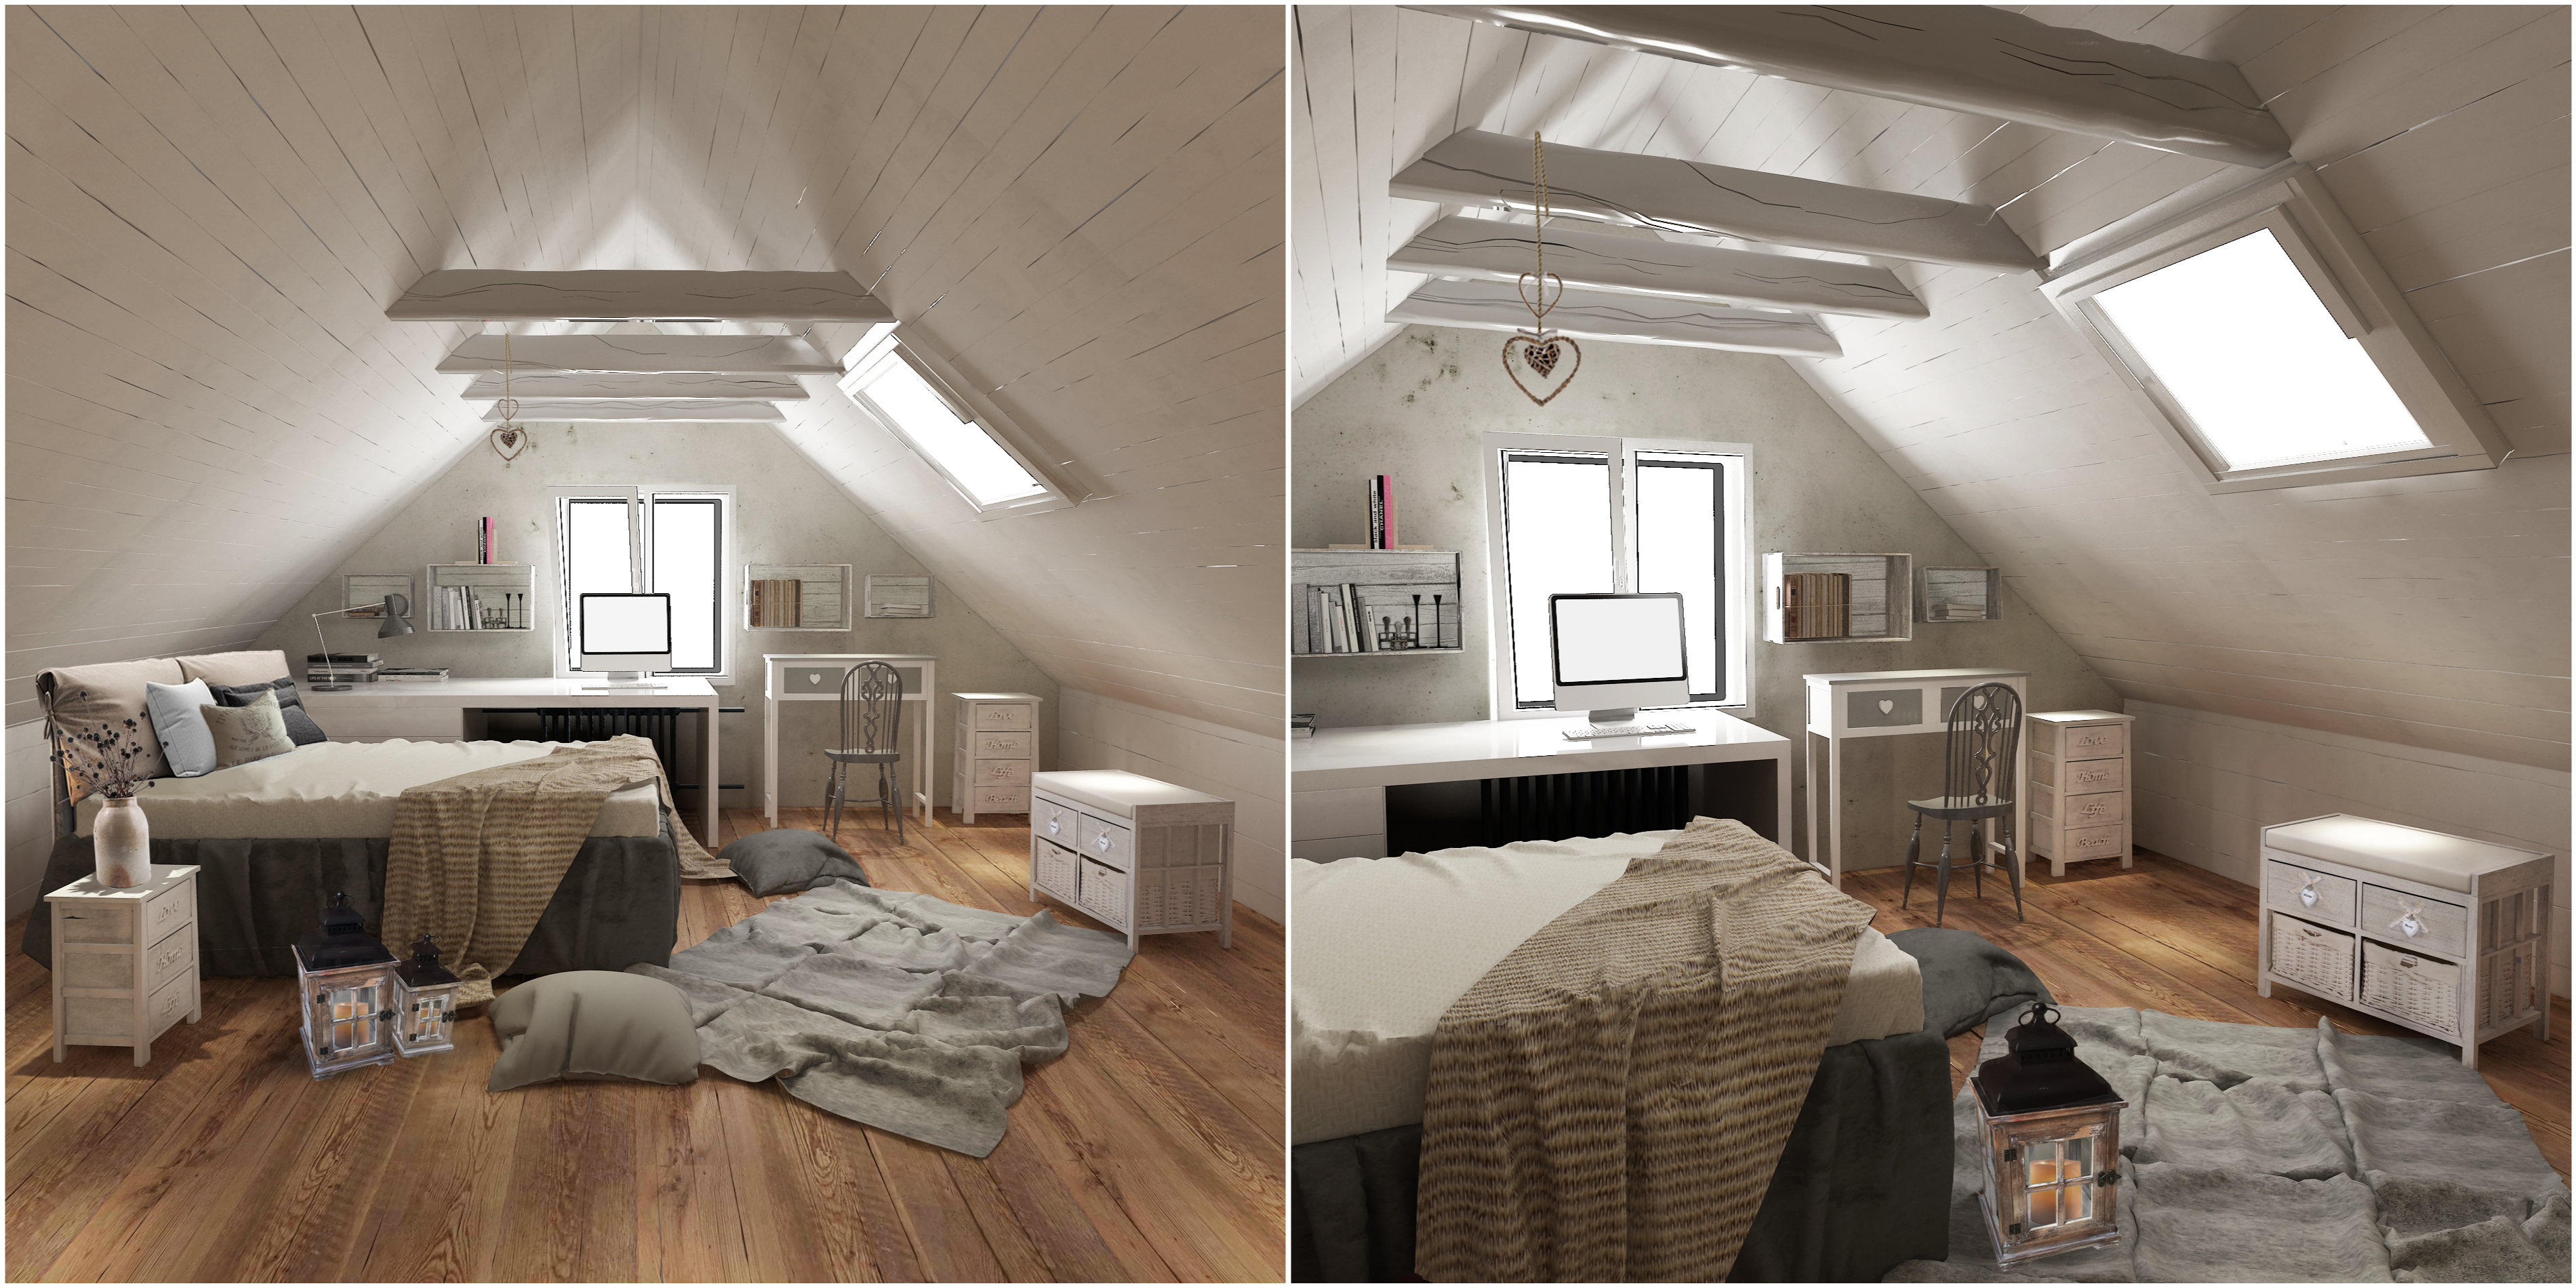 5 idee per arredare la camera da letto in stile shabby chic - Arredare camera matrimoniale ...